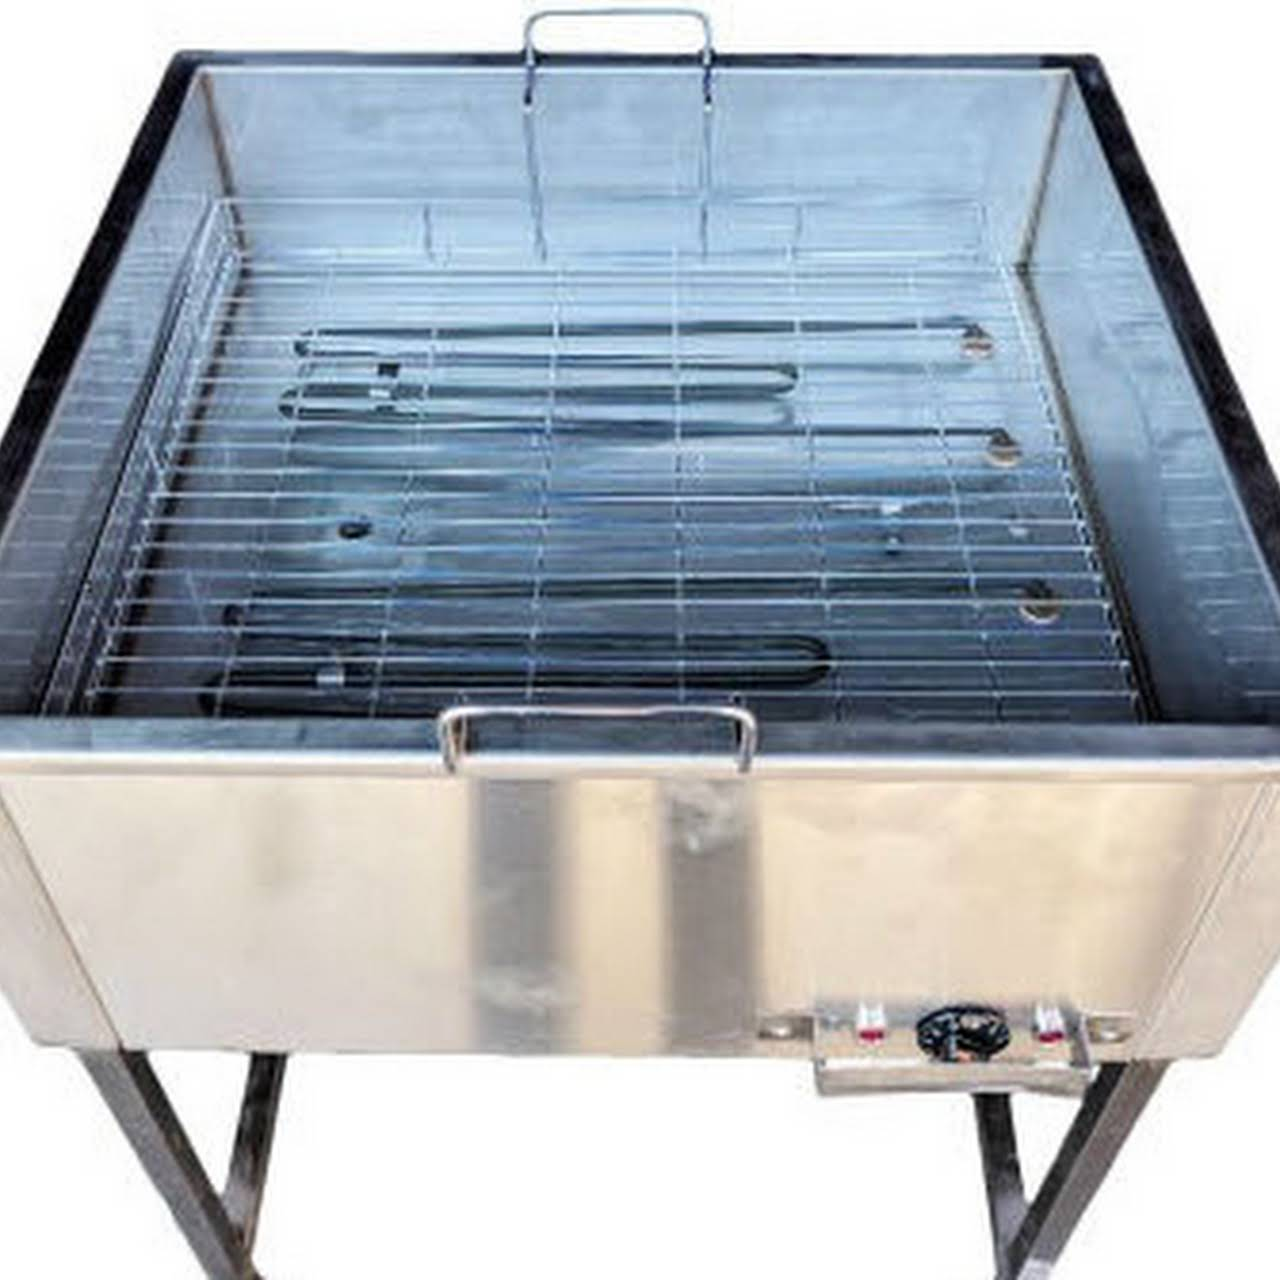 Direct Kitchen Equipment - We sell new and used commercial ...